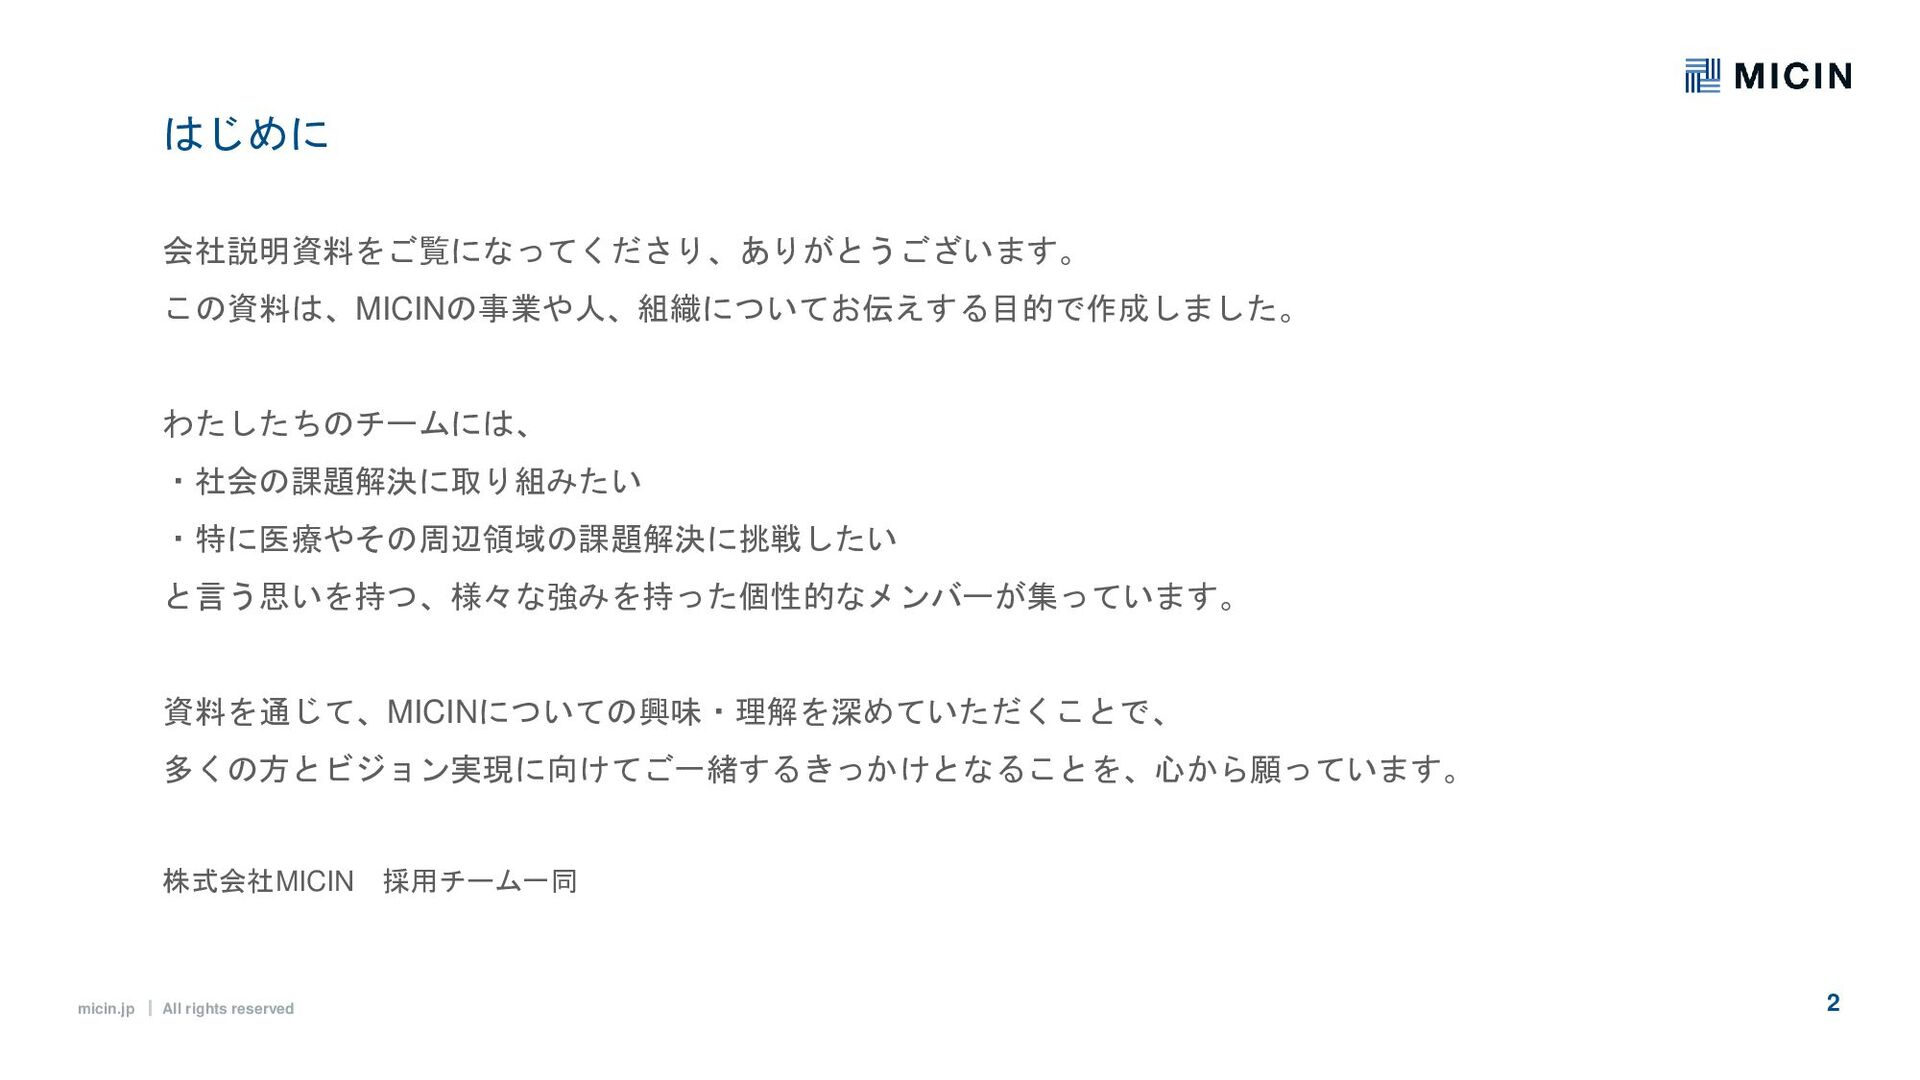 micin.jp ʛ All rights reserved 2 はじめに 会社説明資料をご...